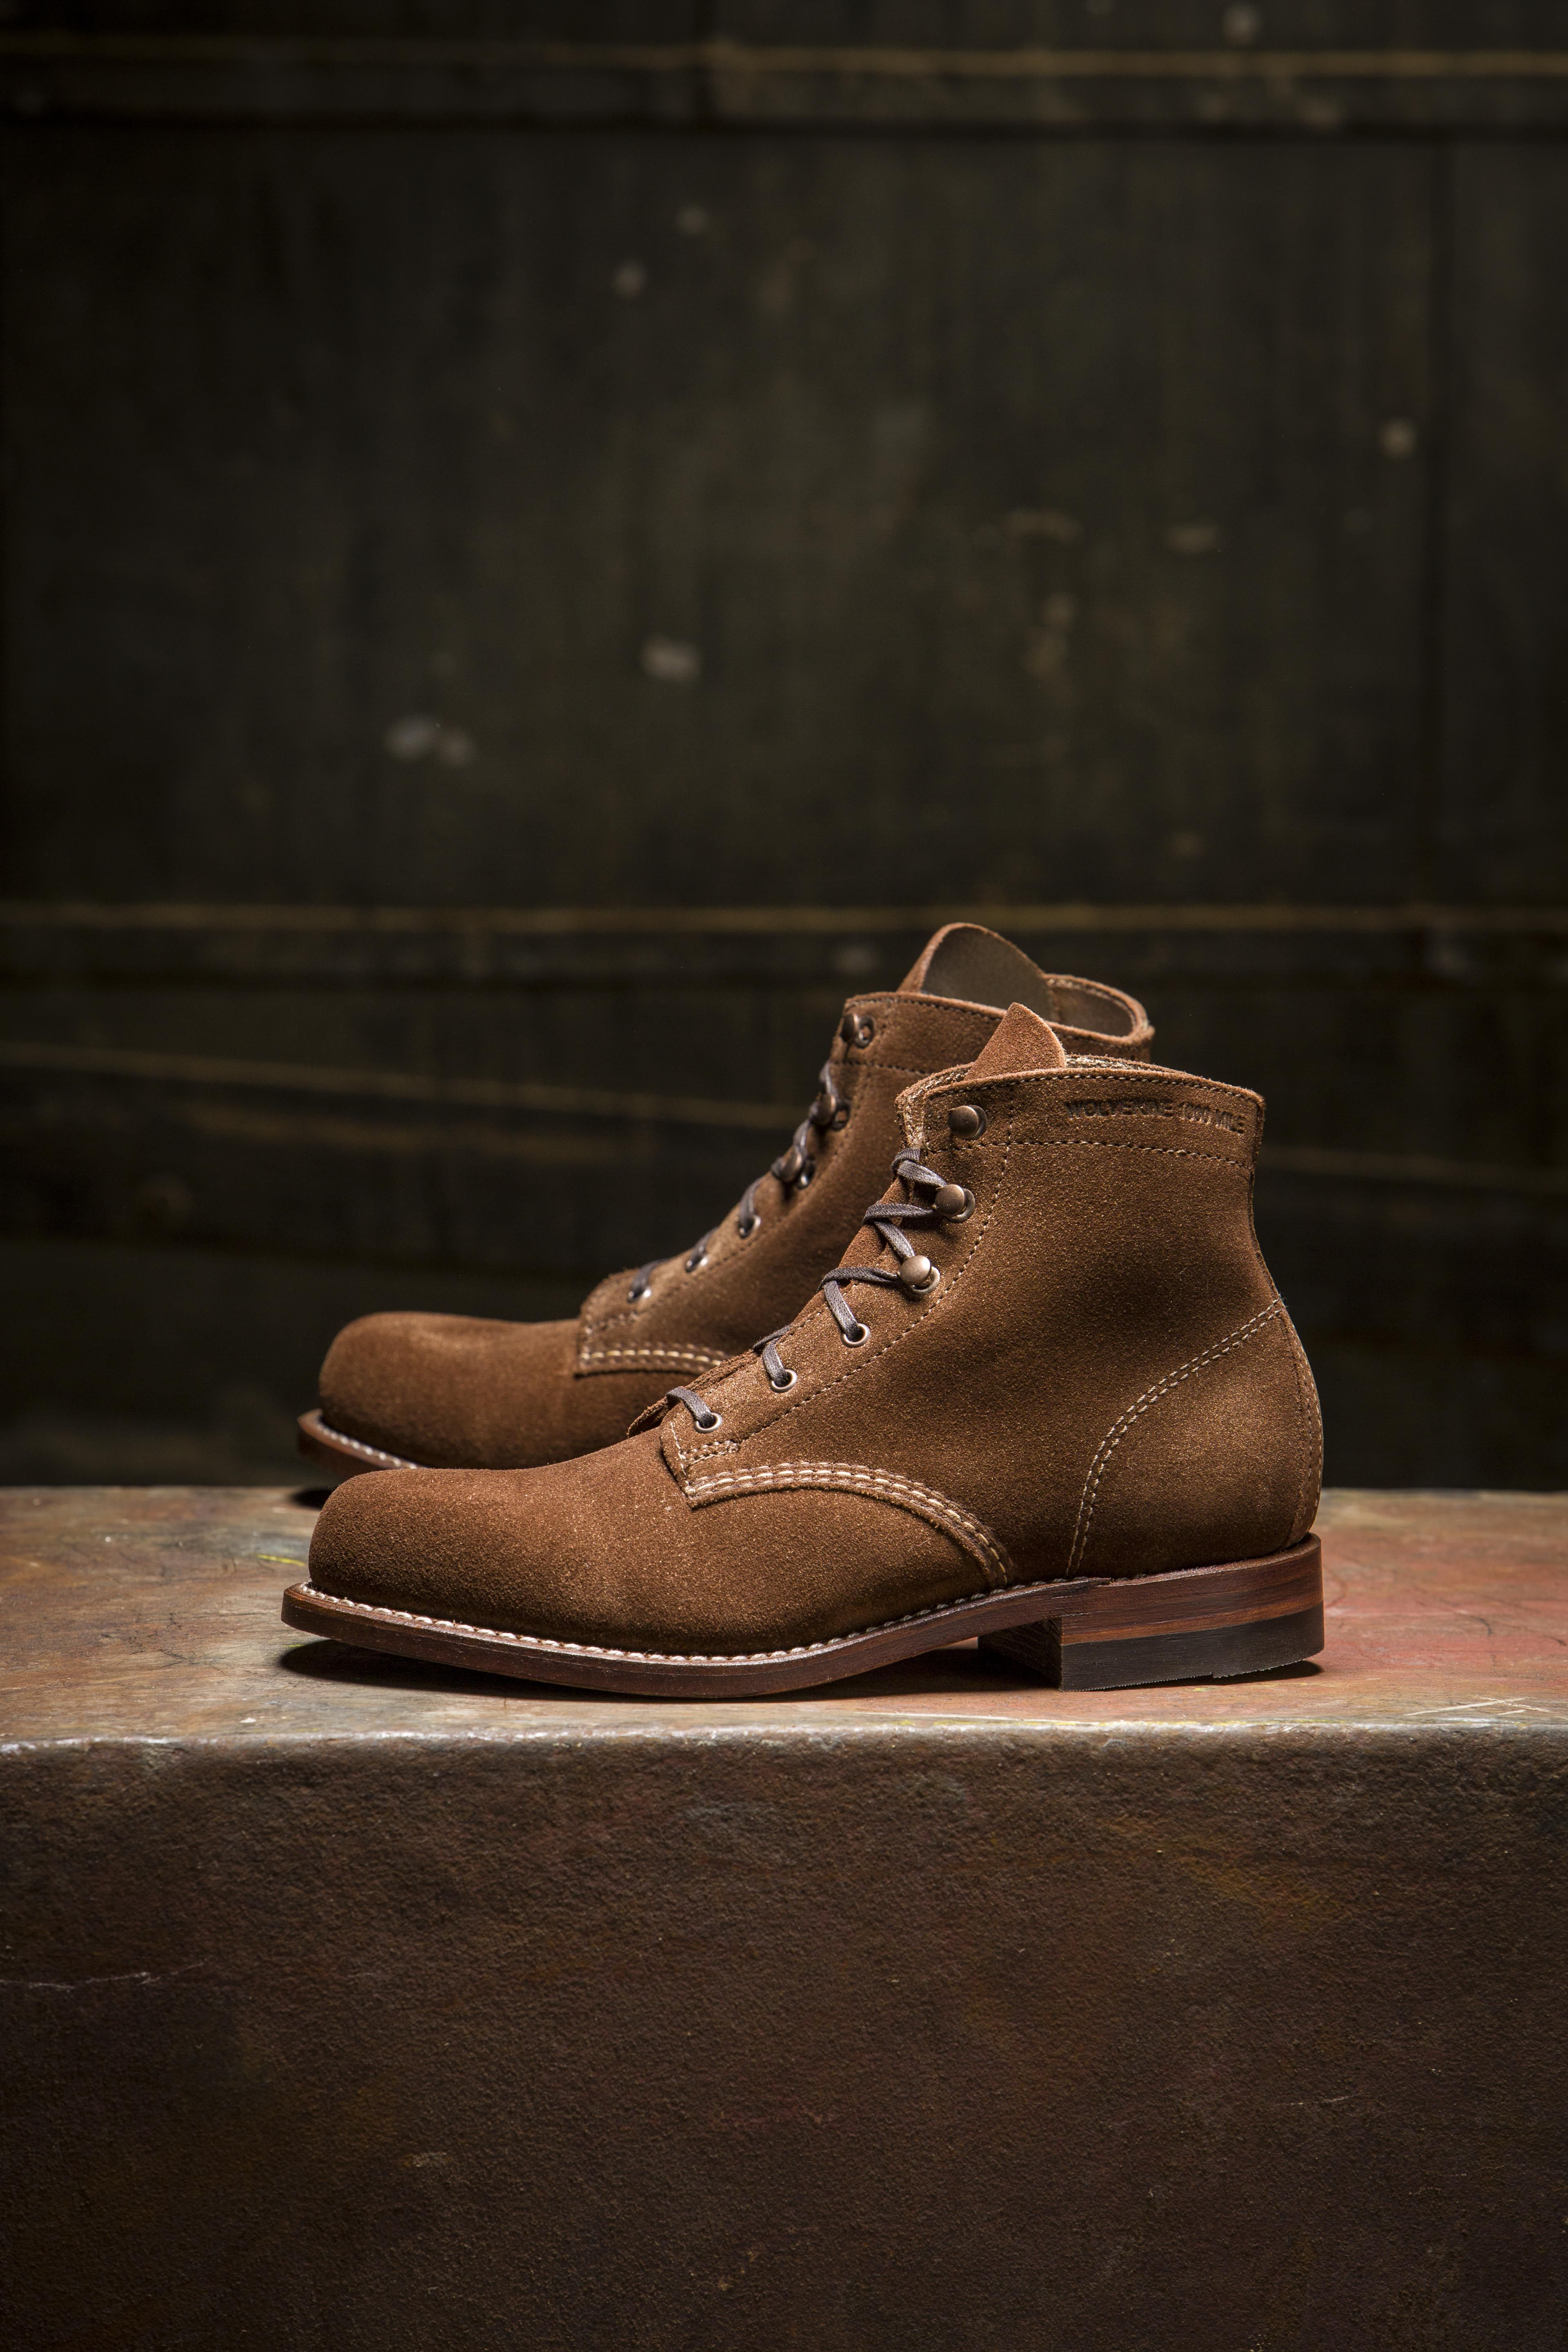 Boots, Wolverine 1000 mile boots